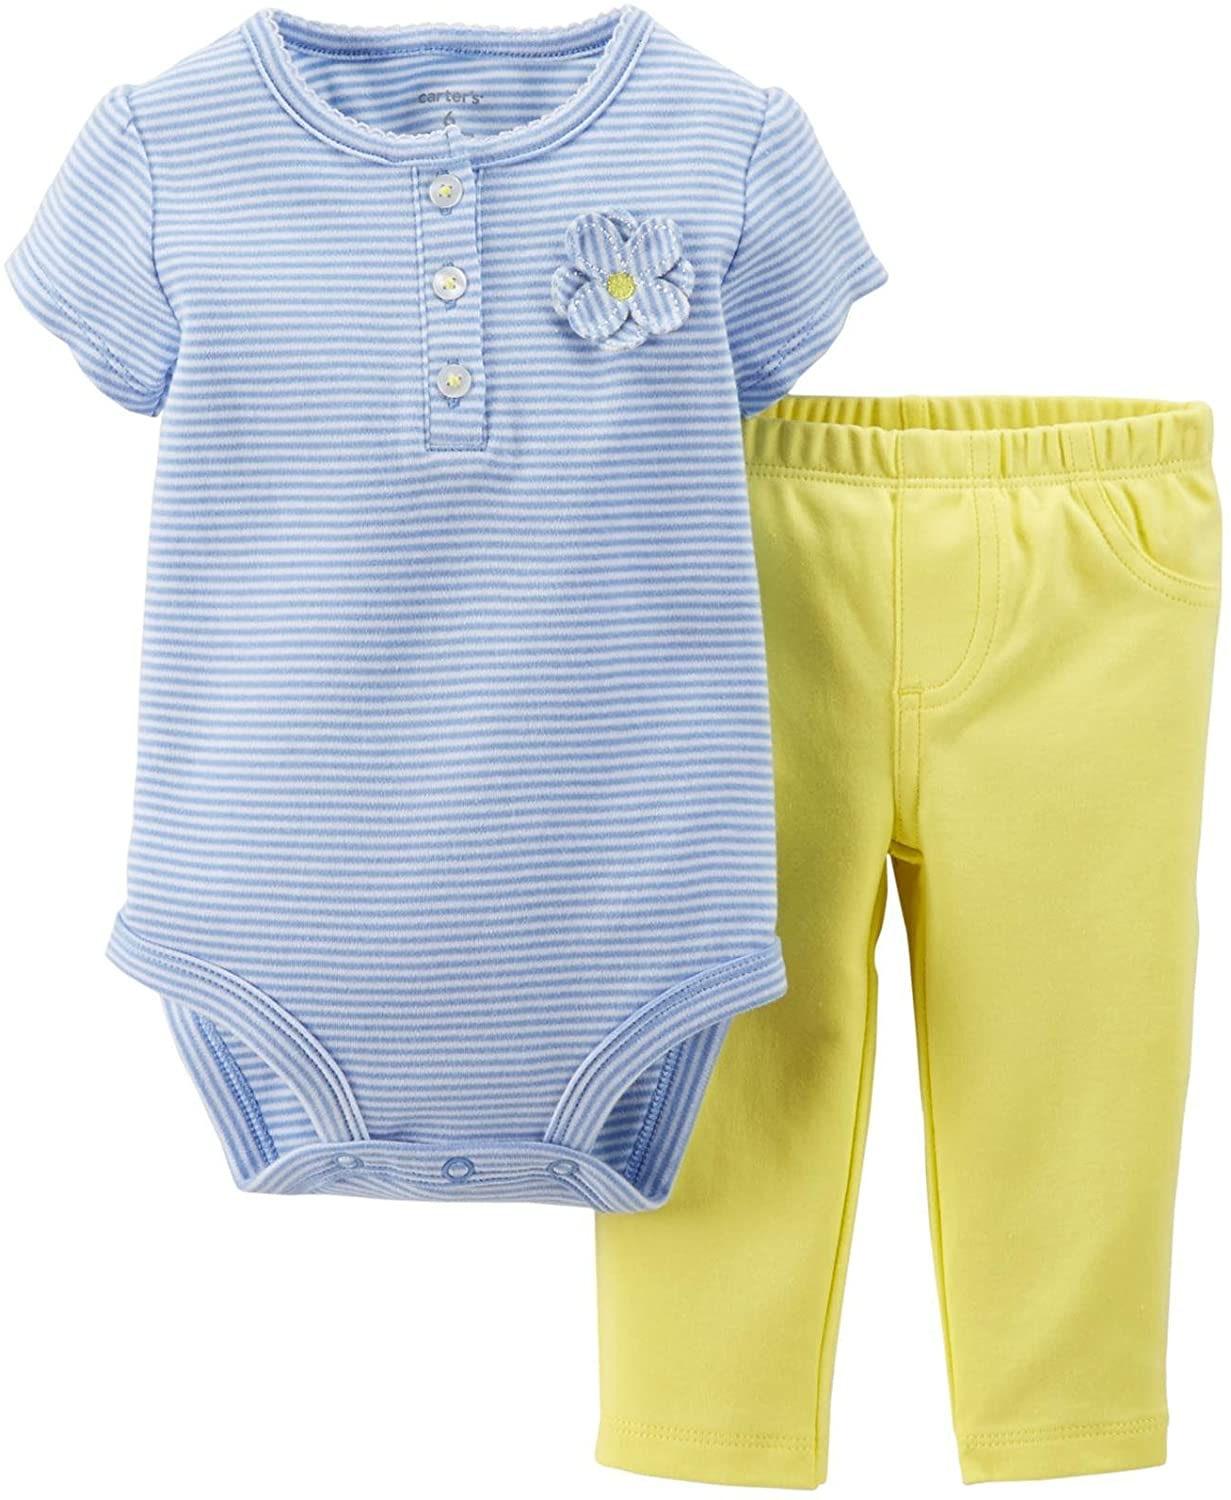 Carters Baby Girls 2 Piece Bodysuit & Pant Set (Baby) - Yellow - 3 Months